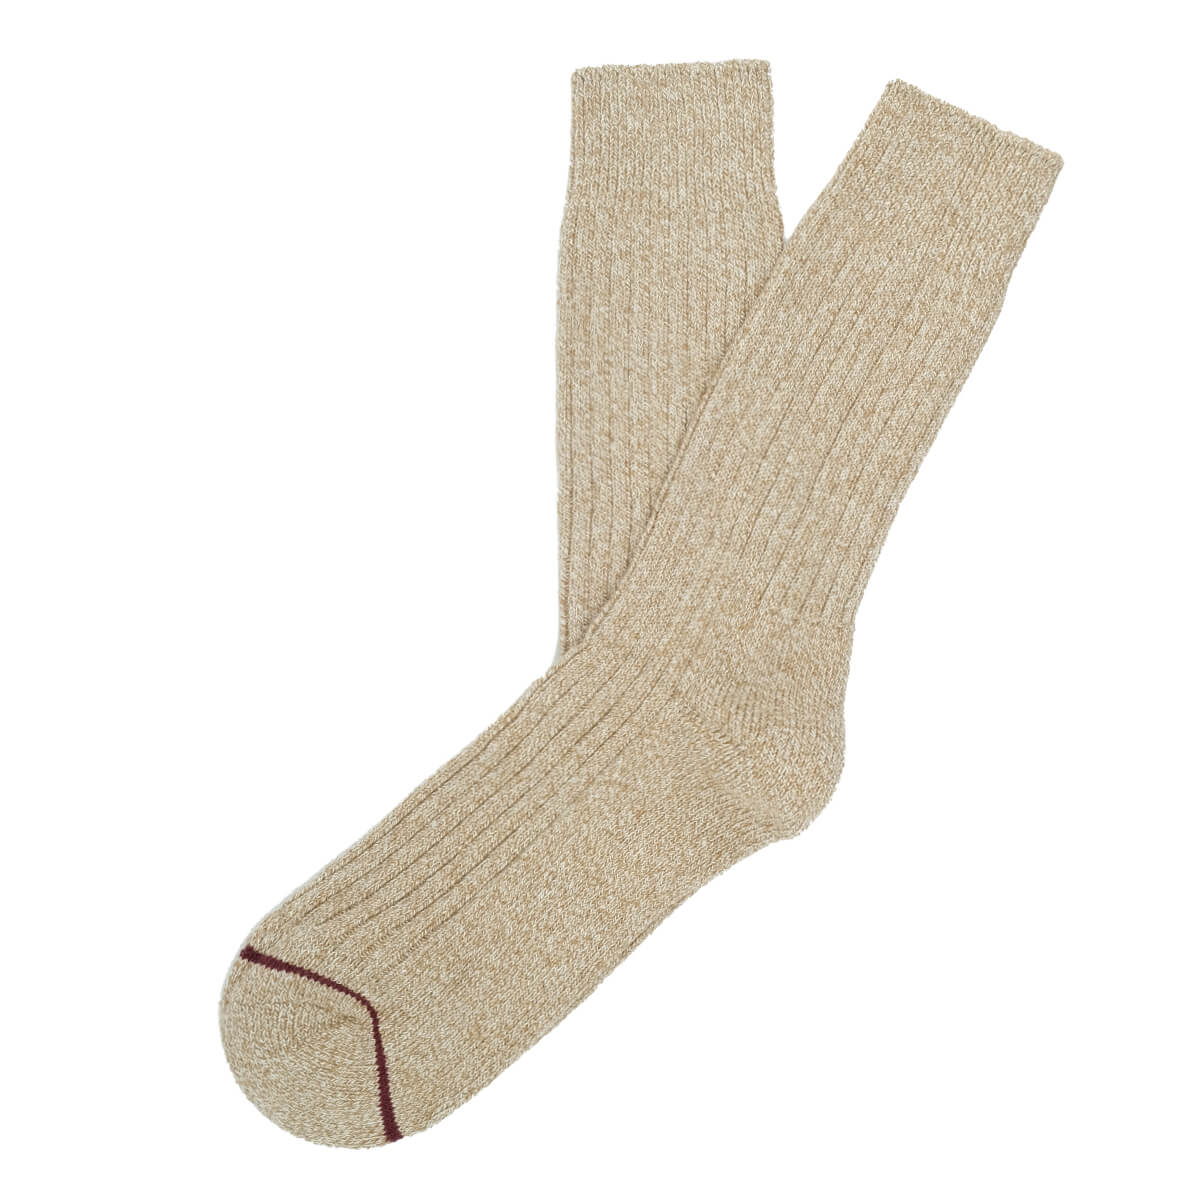 Mens Socks - Get The Boot Socks - Brown⎪Etiquette Clothiers